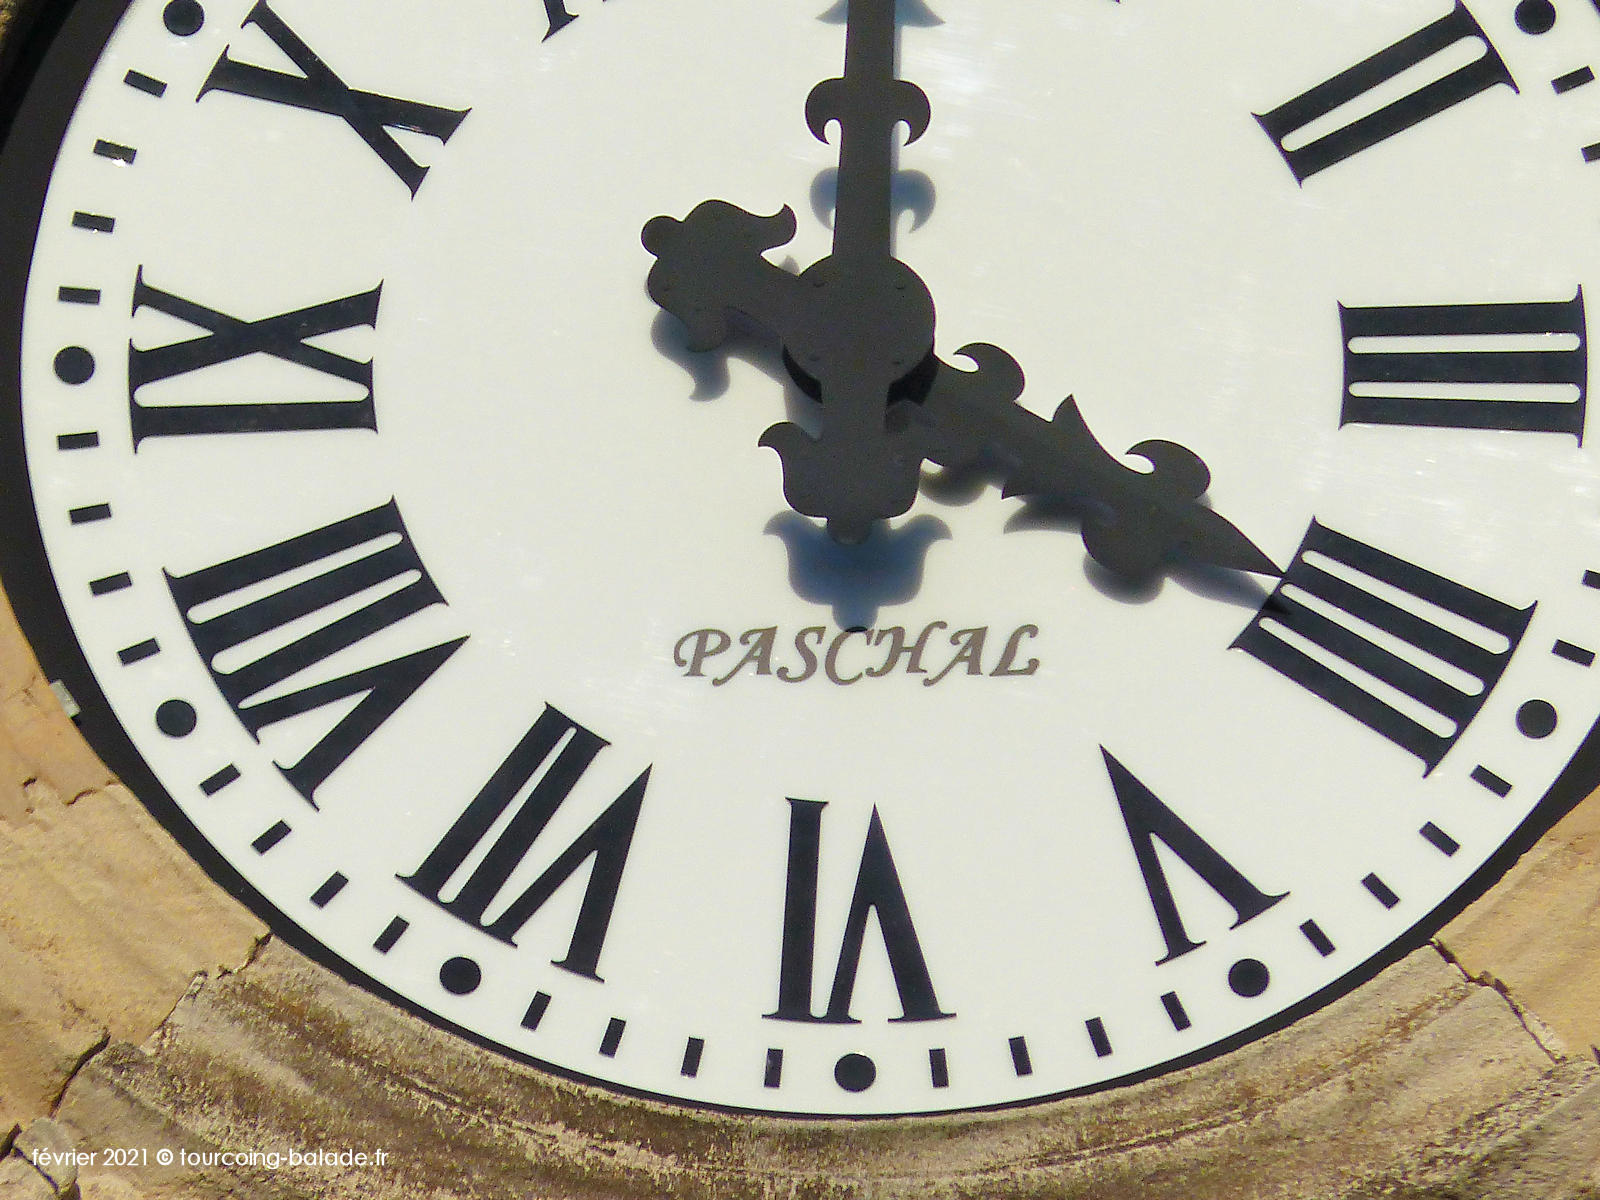 Horloge monumentale Paschal, Tourcoing